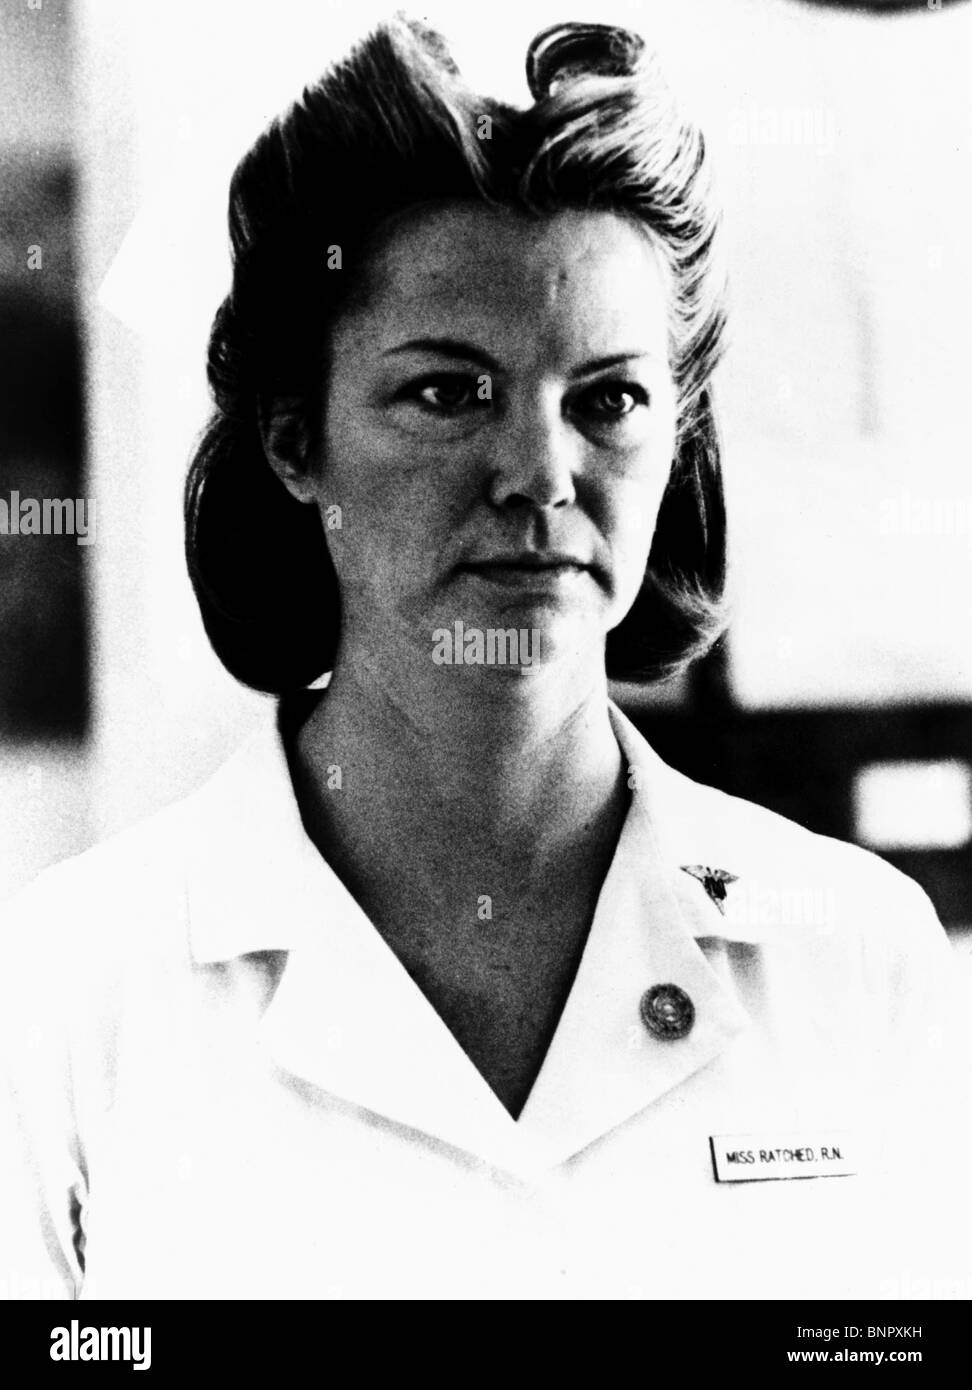 LOUISE FLETCHER ONE FLEW OVER THE CUCKOOS NEST (1975) - Stock Image